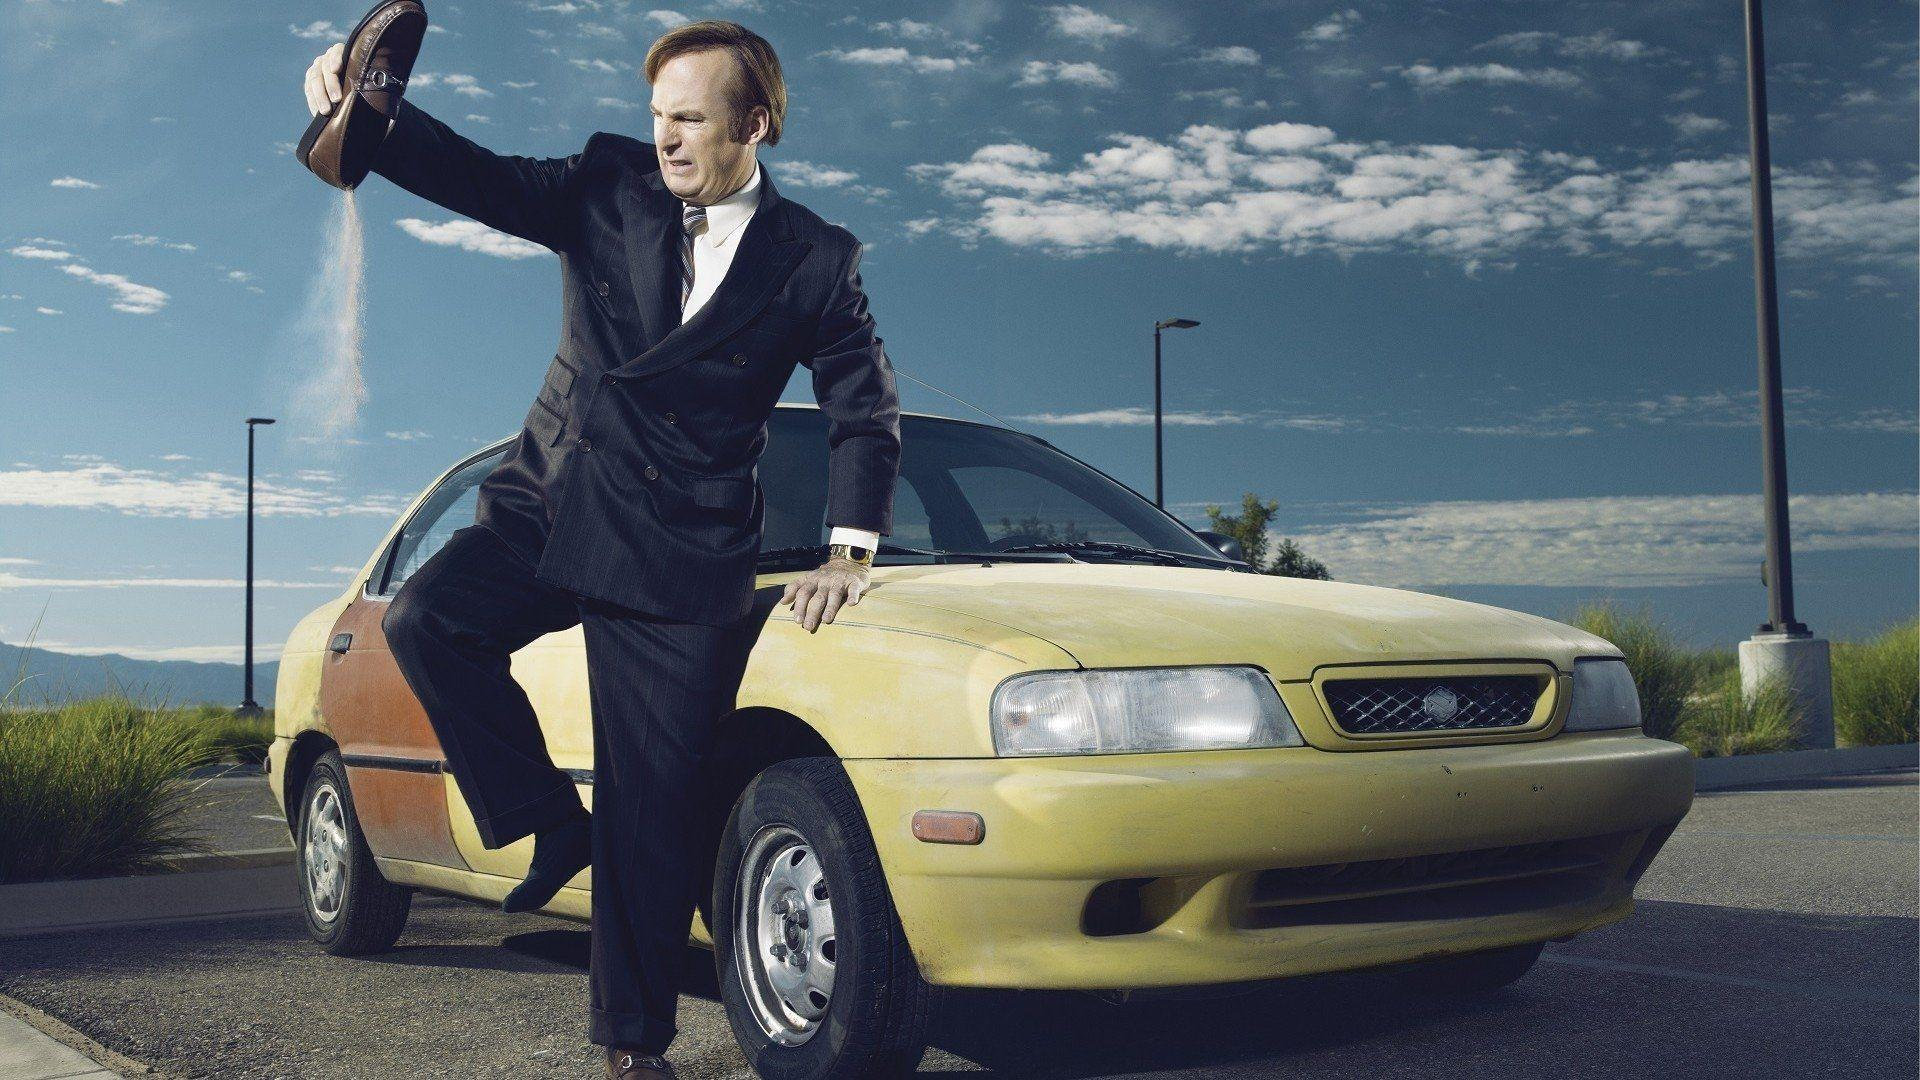 Better Call Saul Background 10